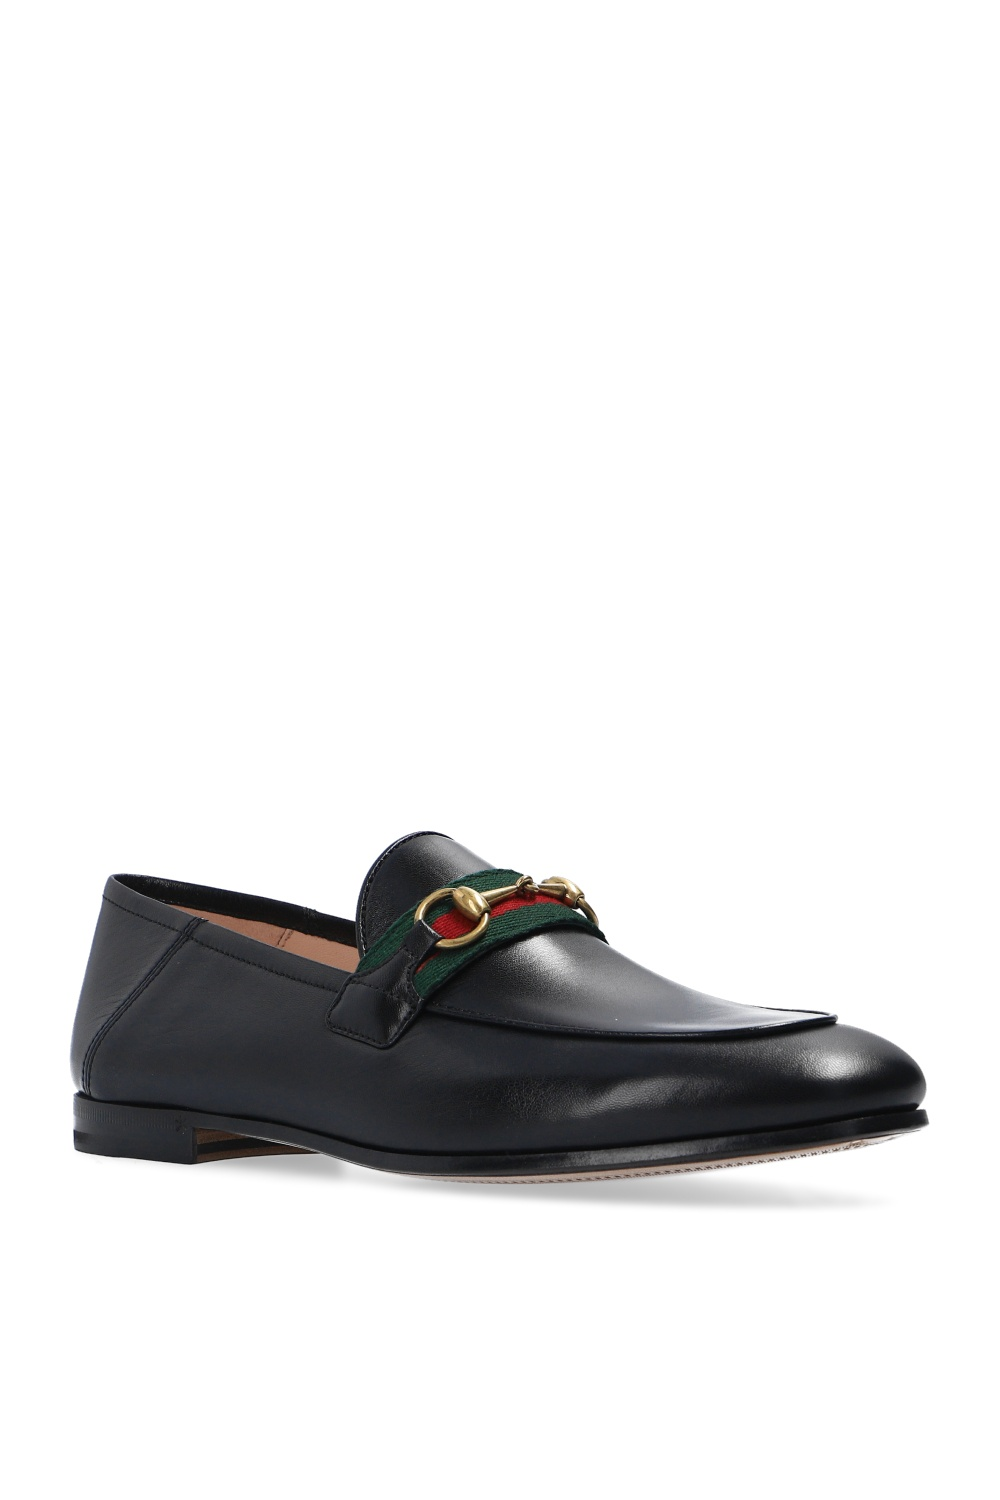 Gucci Leather moccasins